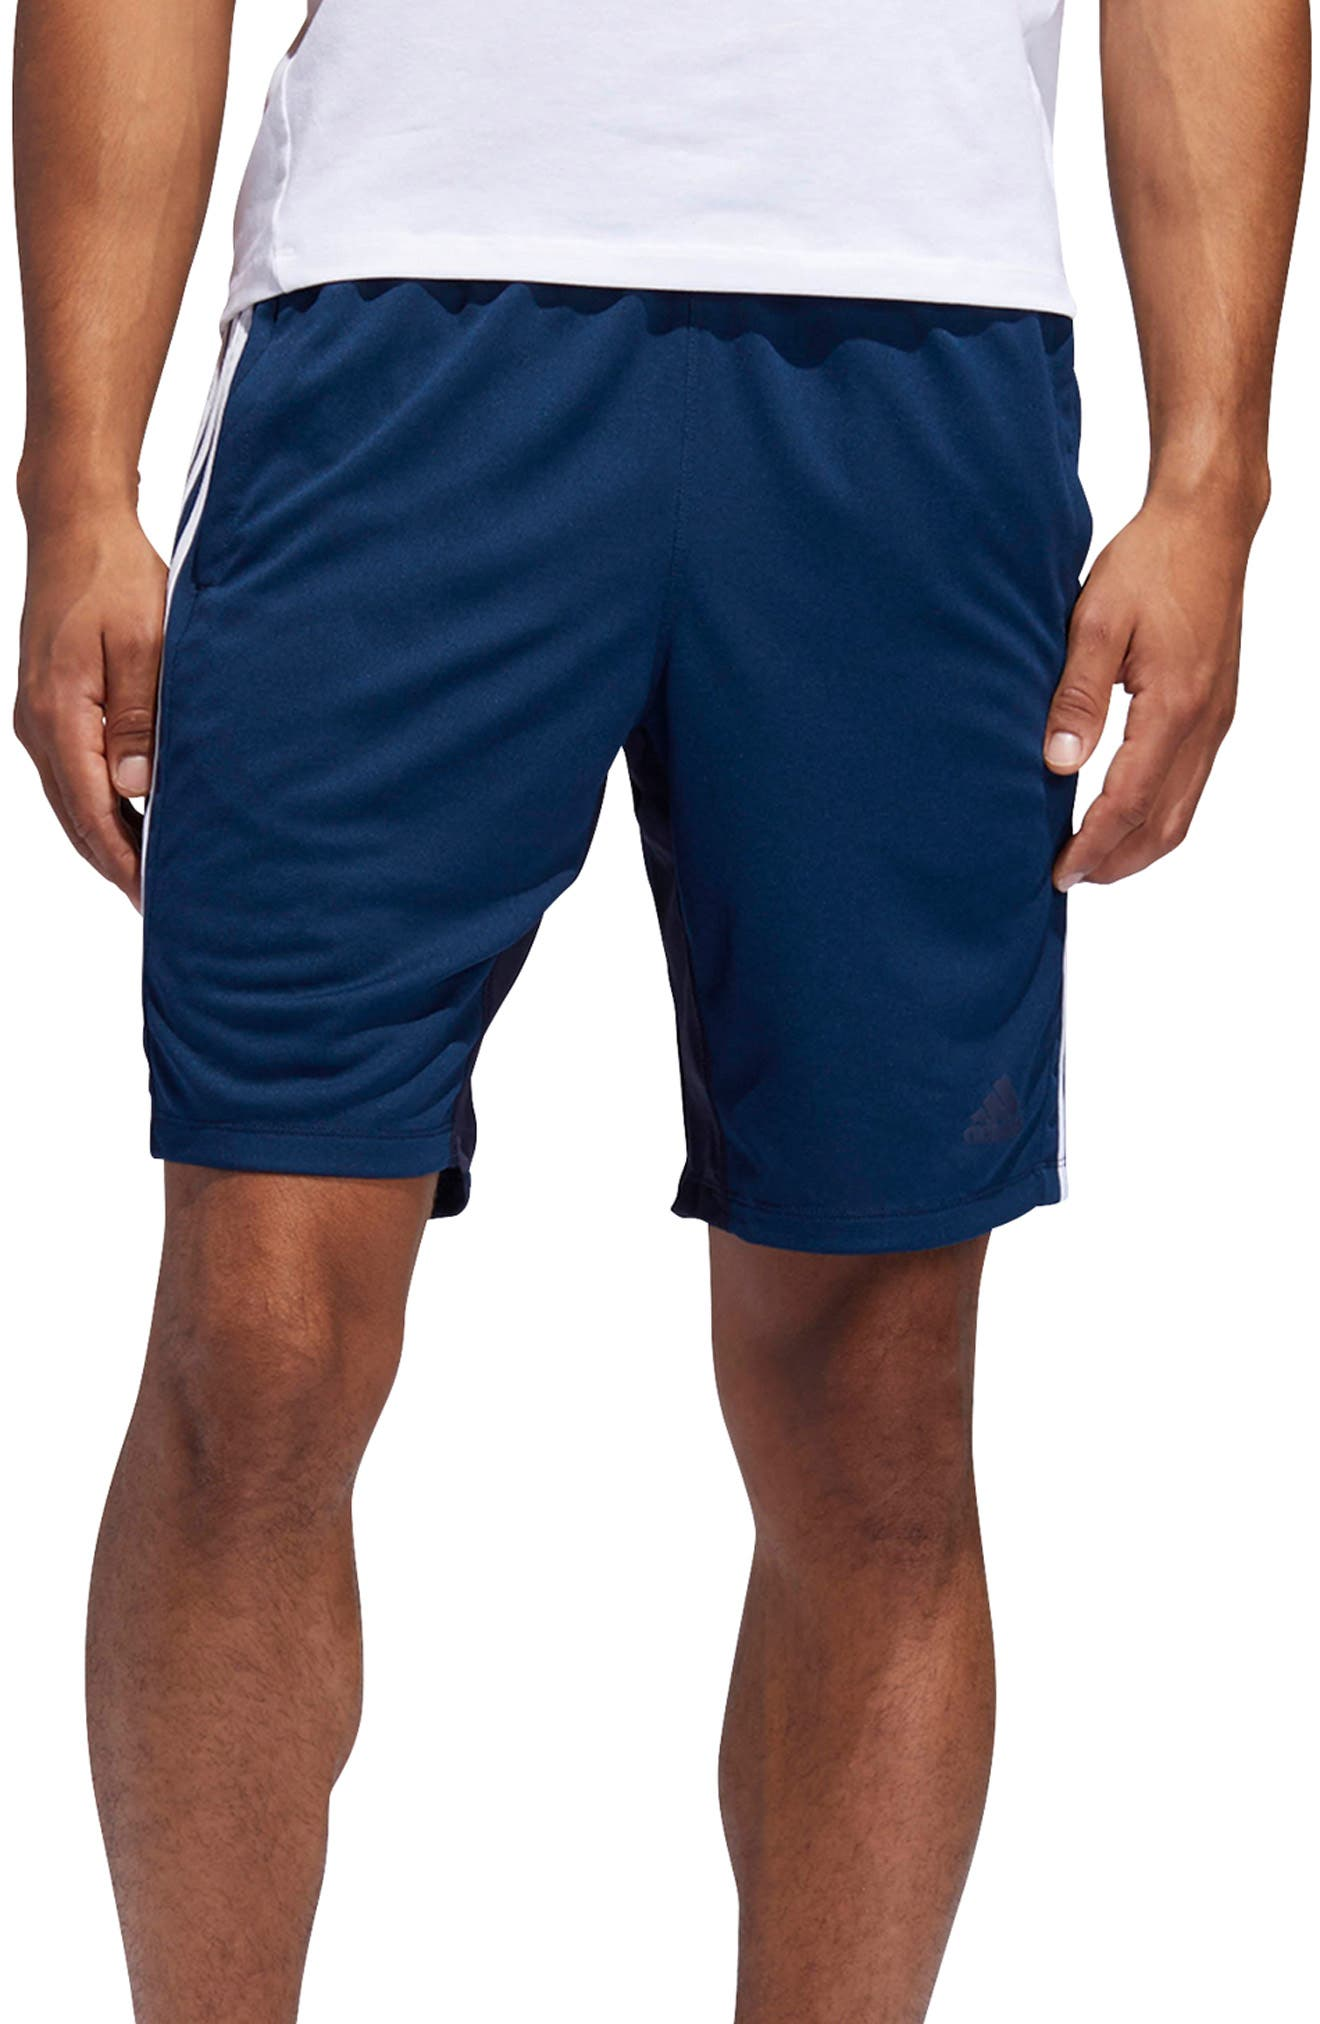 Adidas Shorts Heathered Shorts